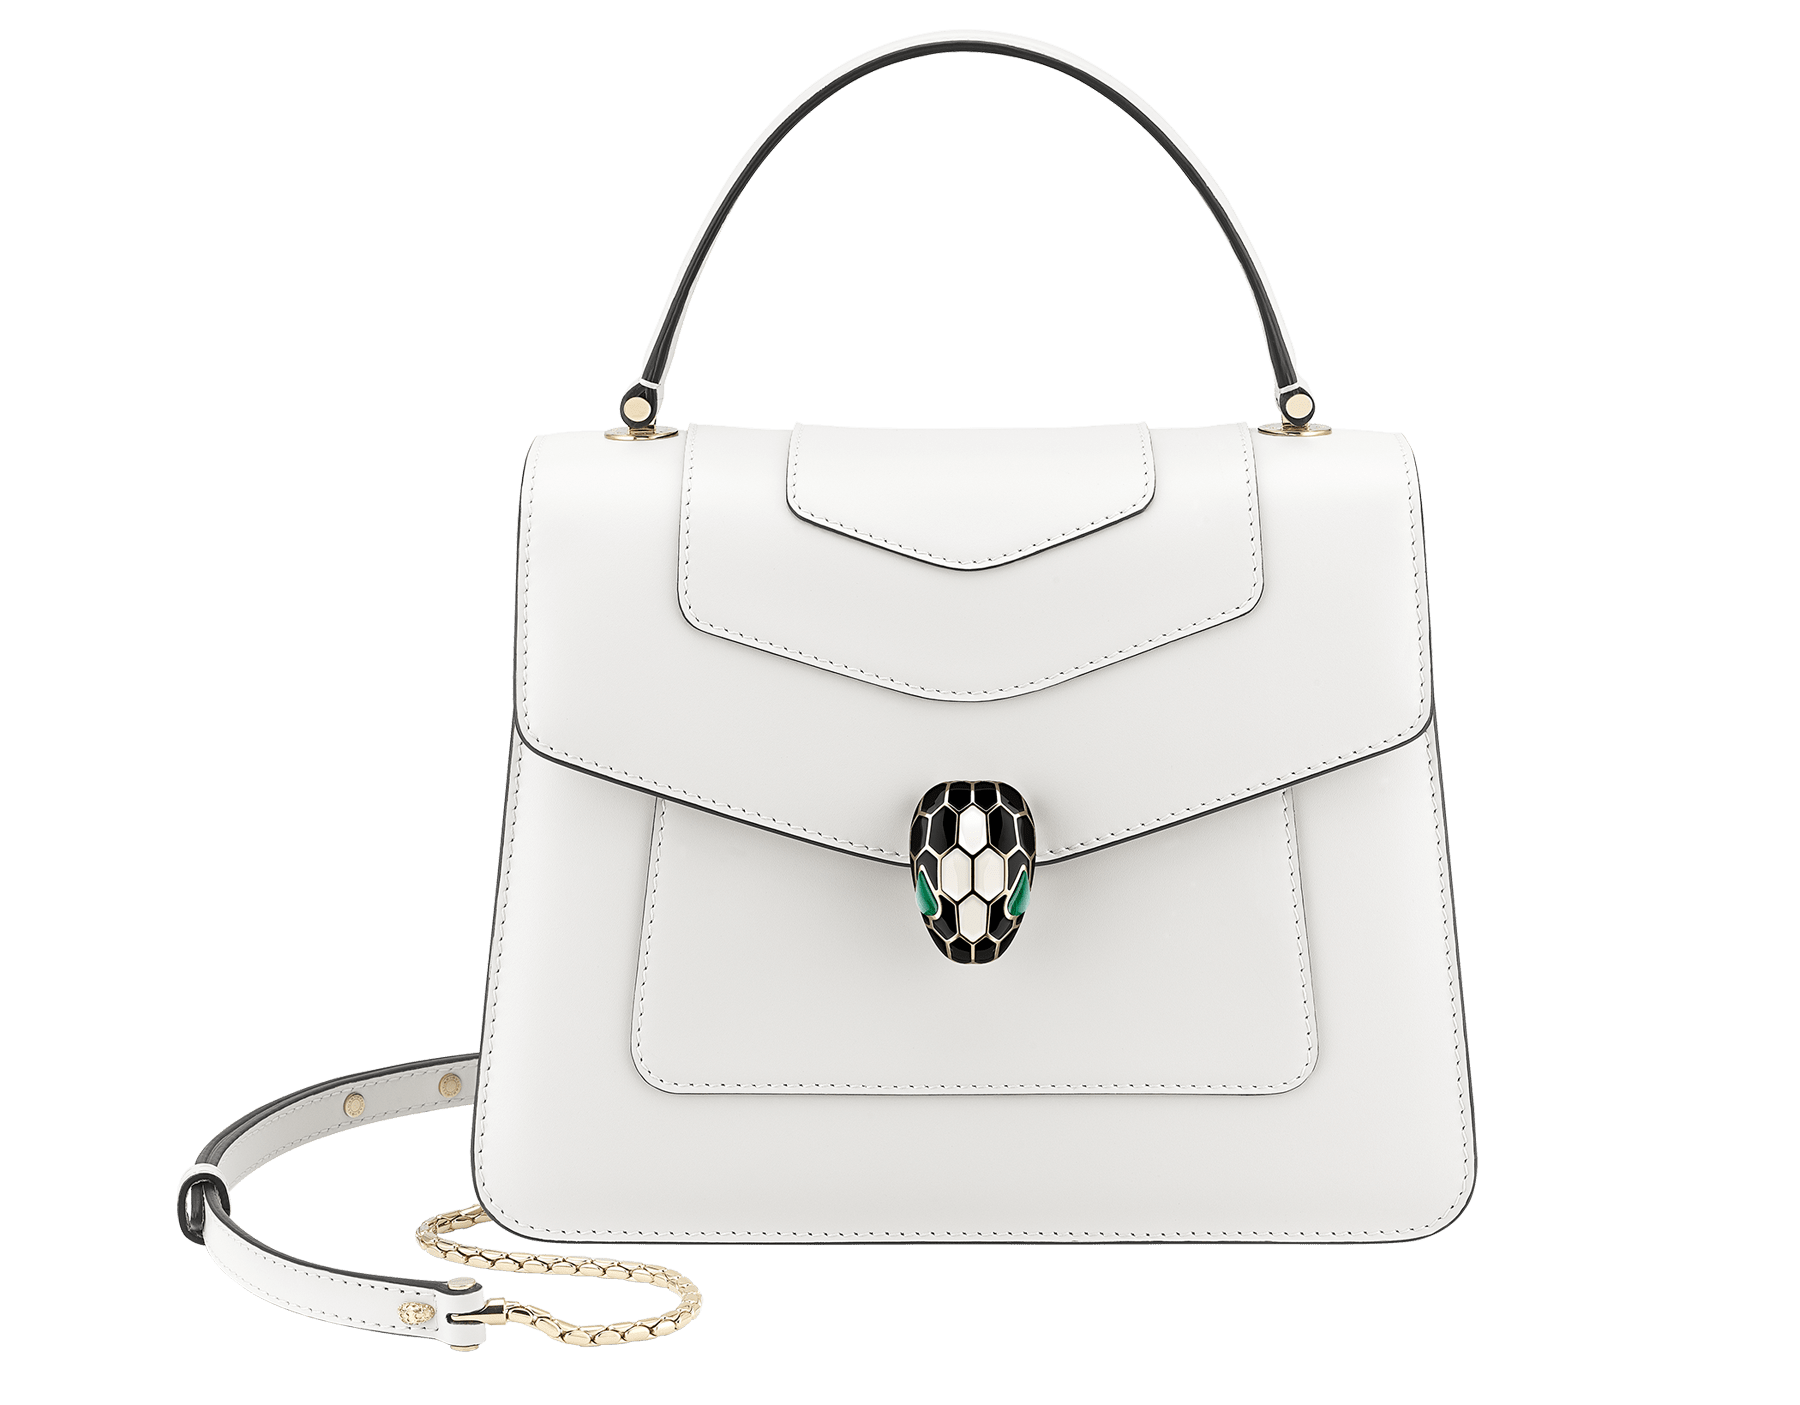 """Serpenti Forever"" top handle bag in daisy topaz calf leather. Iconic snake head closure in light gold plated brass enriched with black and white enamel and green malachite eyes. 1050-CL image 1"